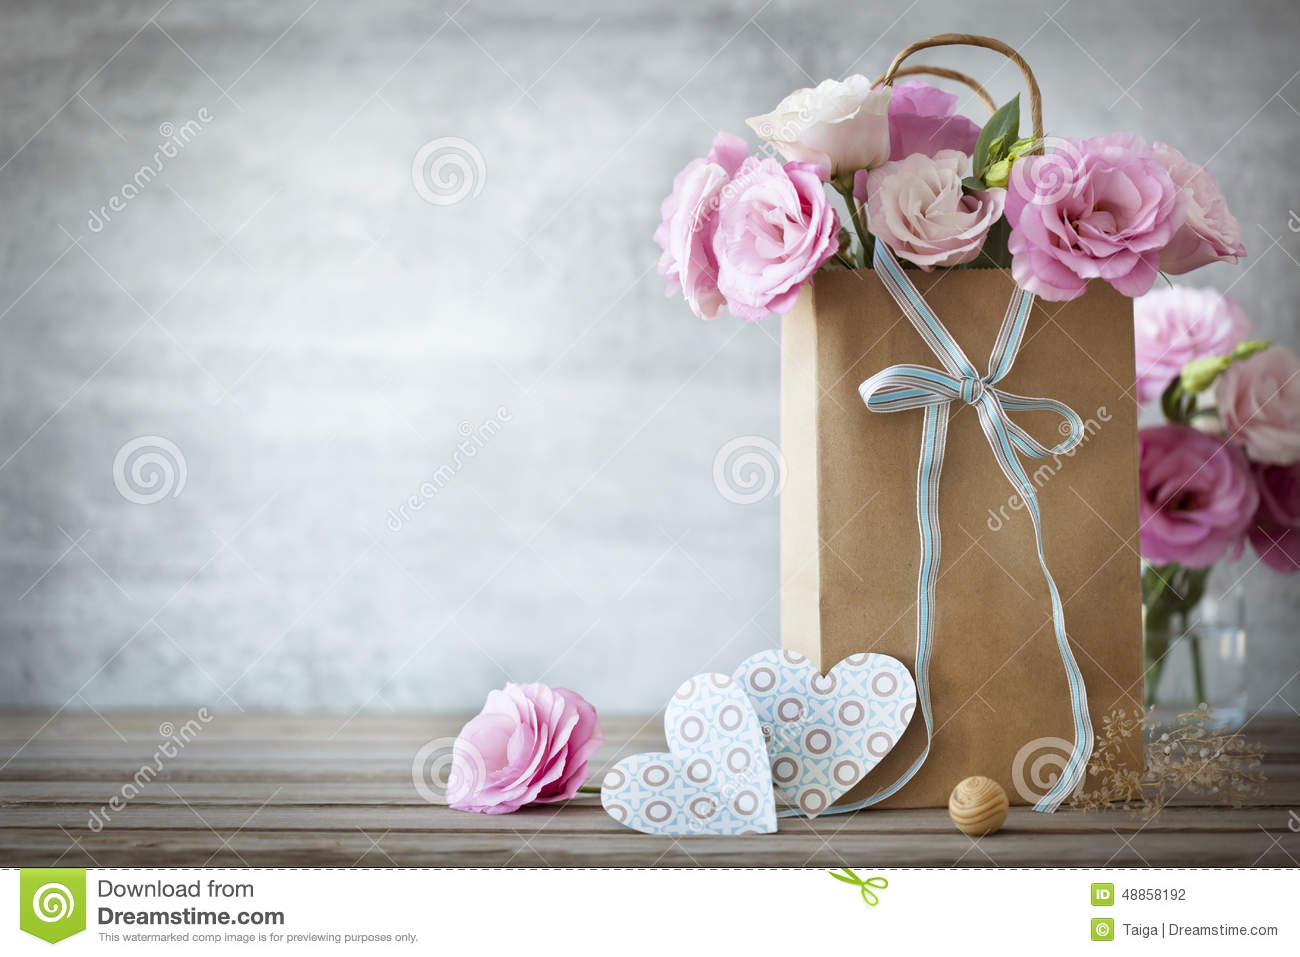 Valentines Day background with roses flowers and Hearts